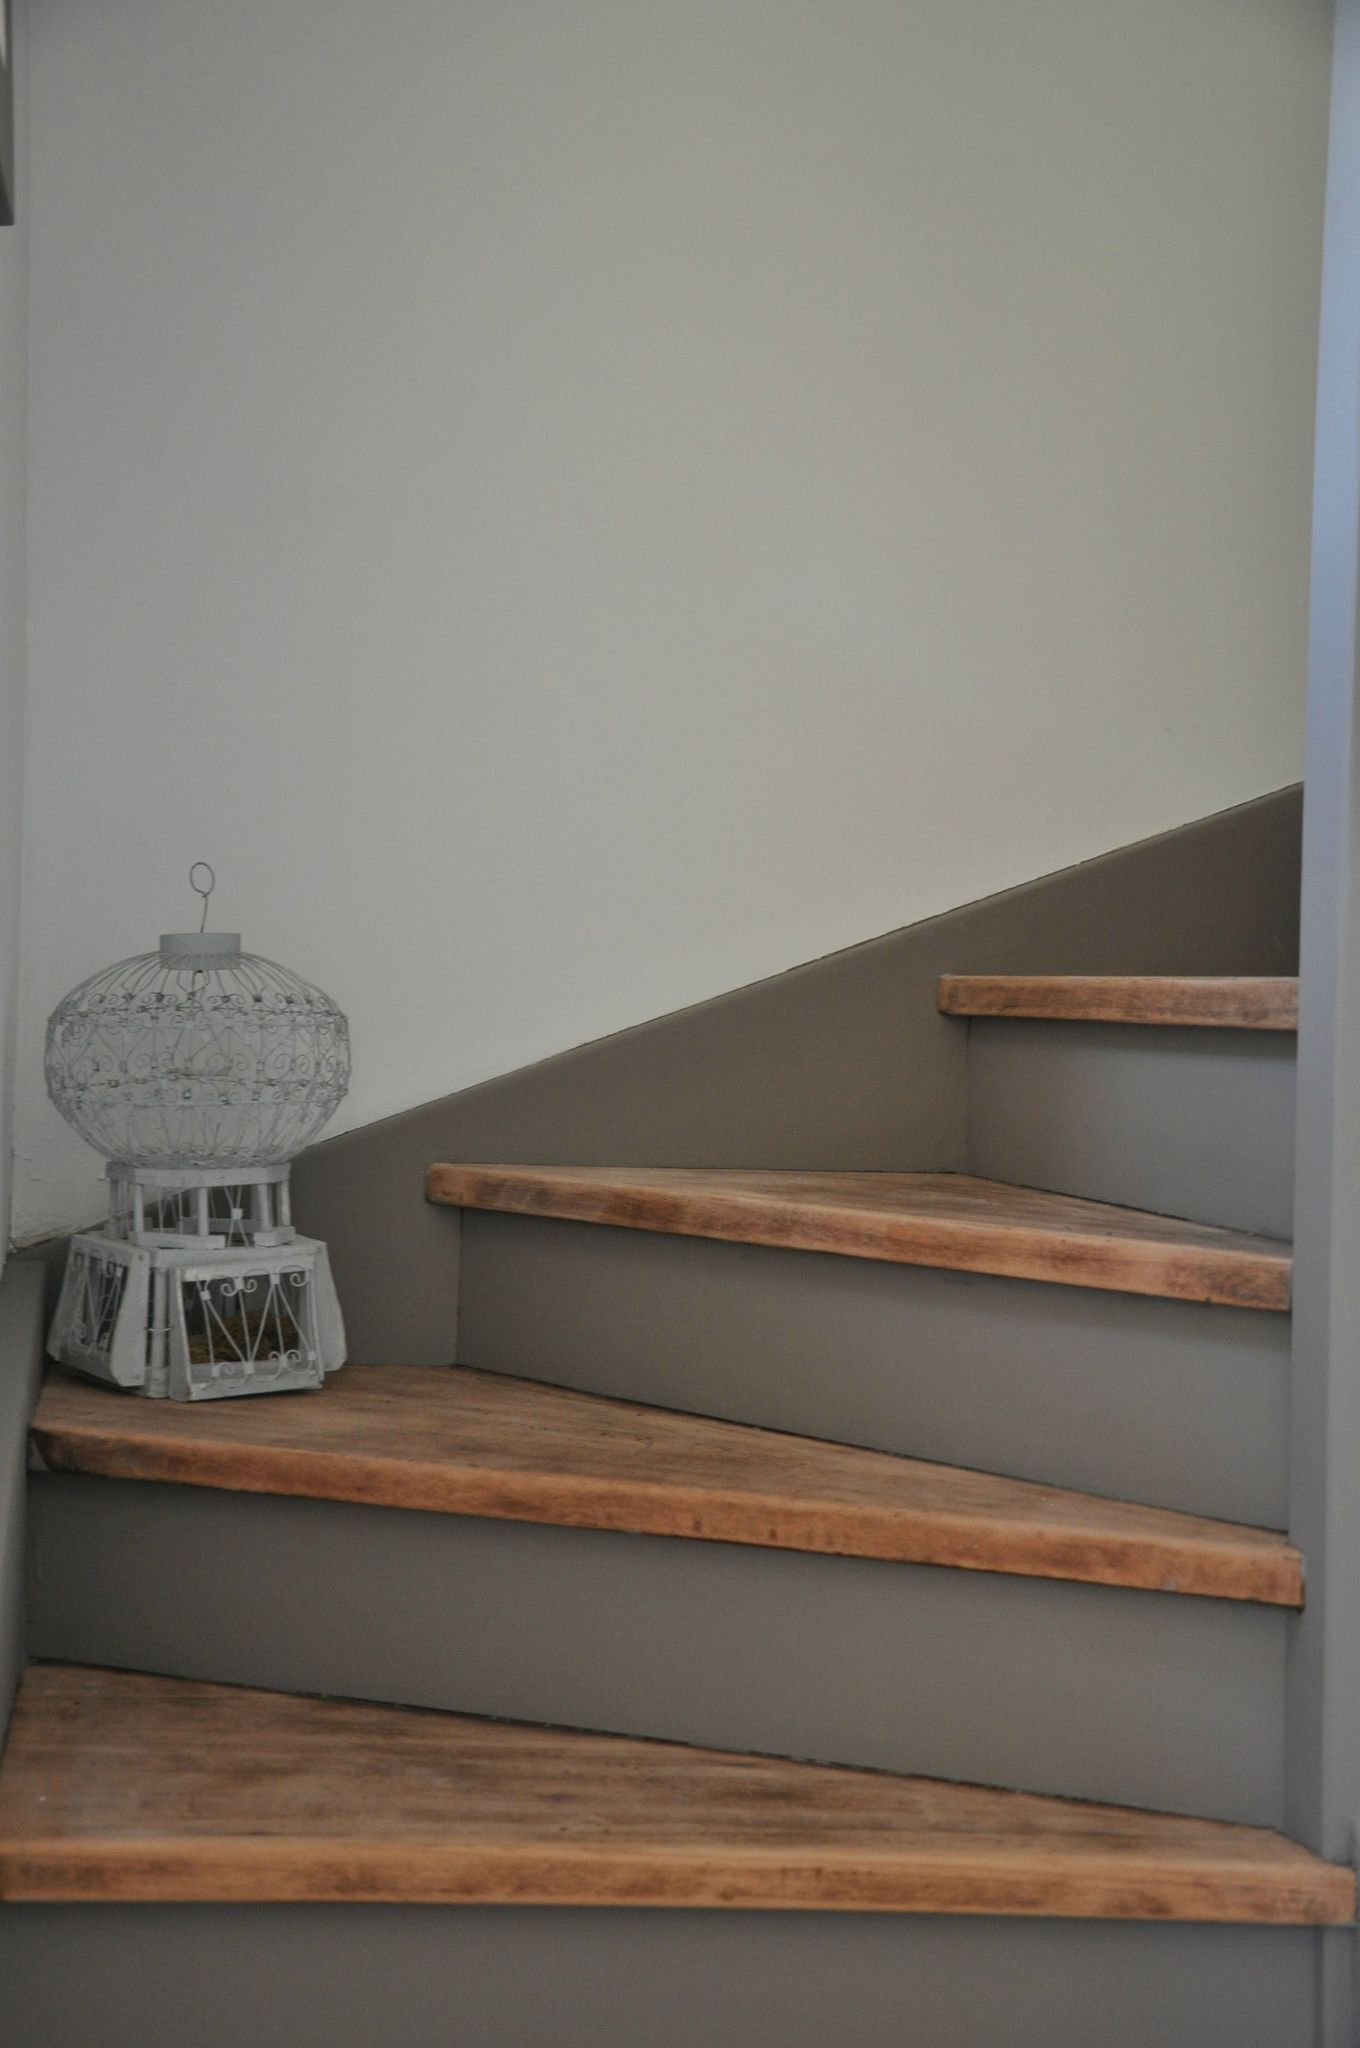 Stair Treads Left Bare Wood Waxed Risers Painted In Stormy Grey | Grey Wood Stair Treads | Coloured | Marble | Low Cost | Gray Color | Porcelain